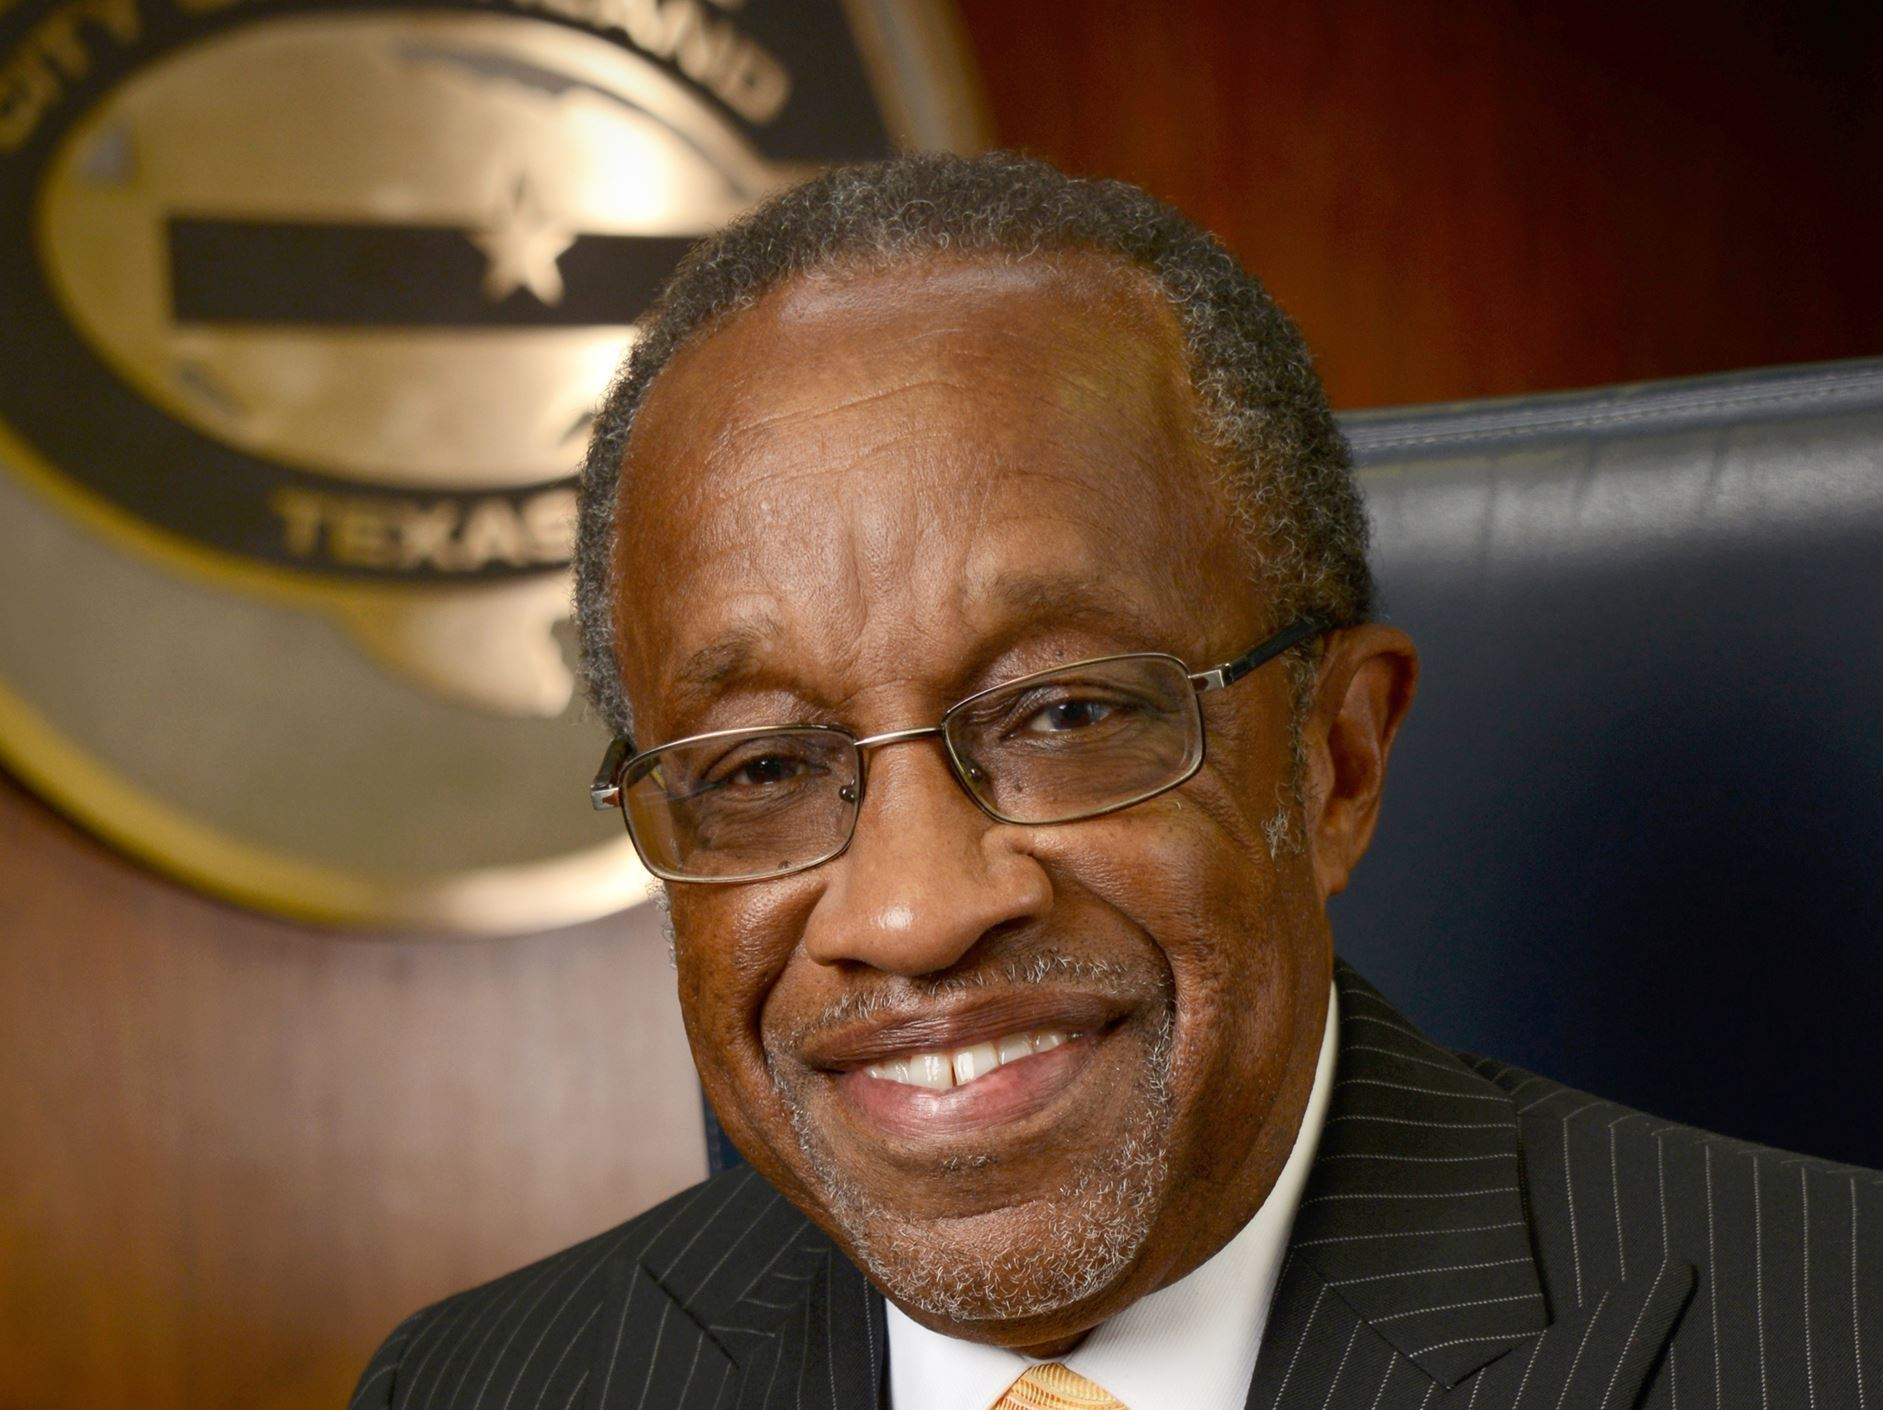 B.J. Williams, former Garland City Councilman